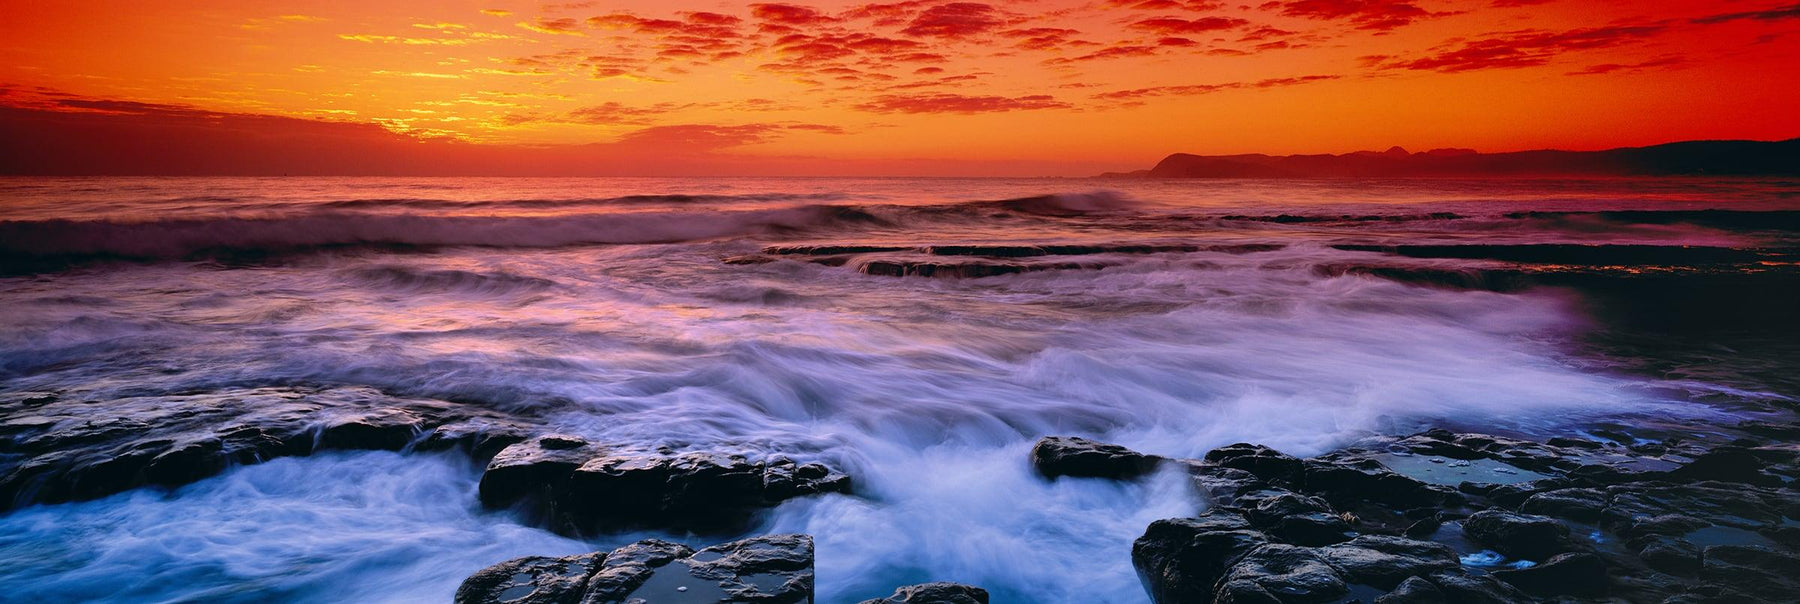 Waves crashing during sunrise off a rocky beach in Tasmania at sunset